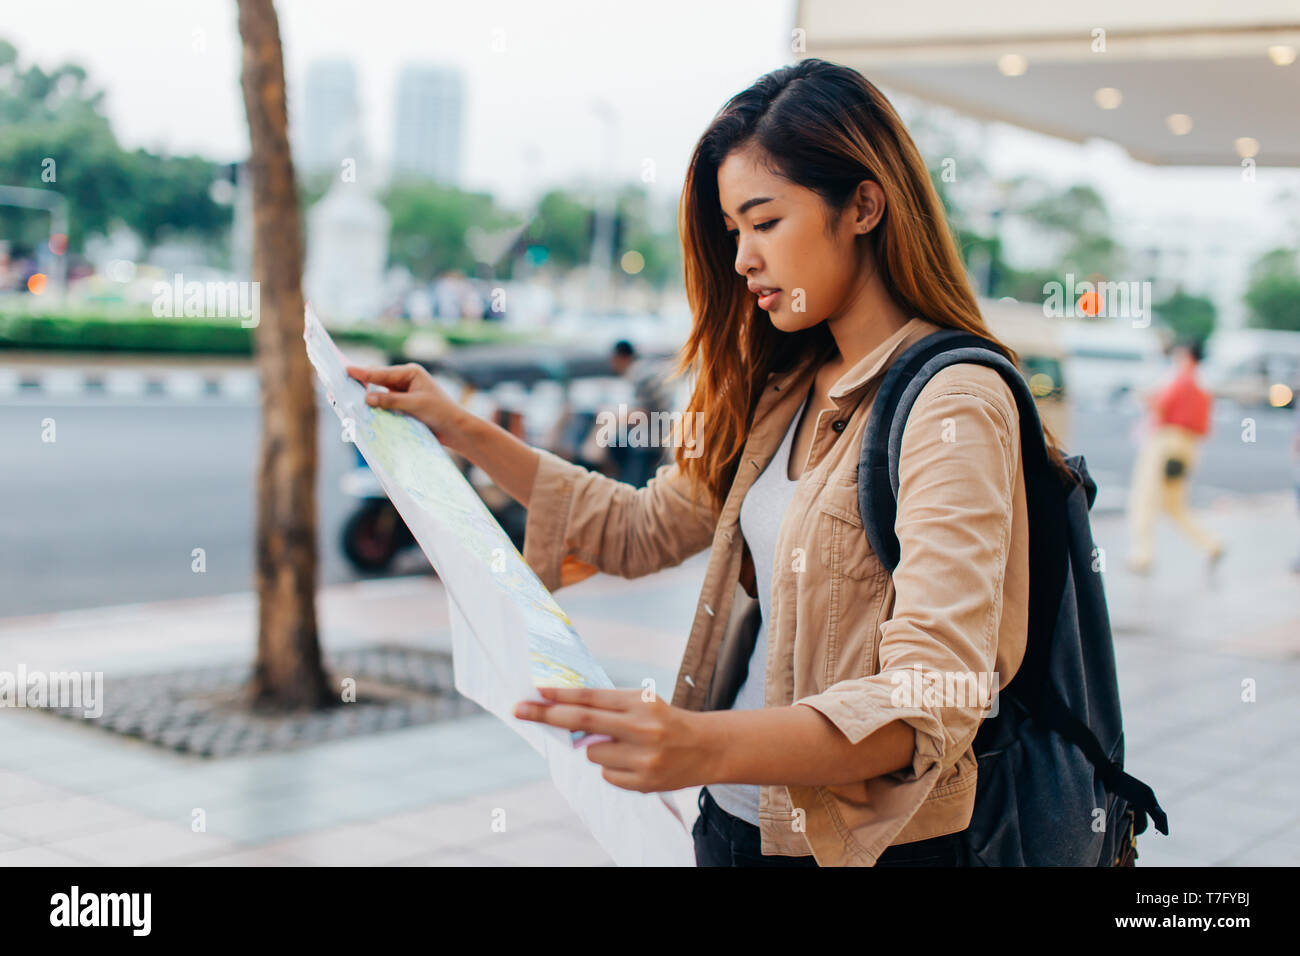 Pretty casual Asian woman with backpack reading paper map while exploring city of Bangkok, Thailand - Stock Image